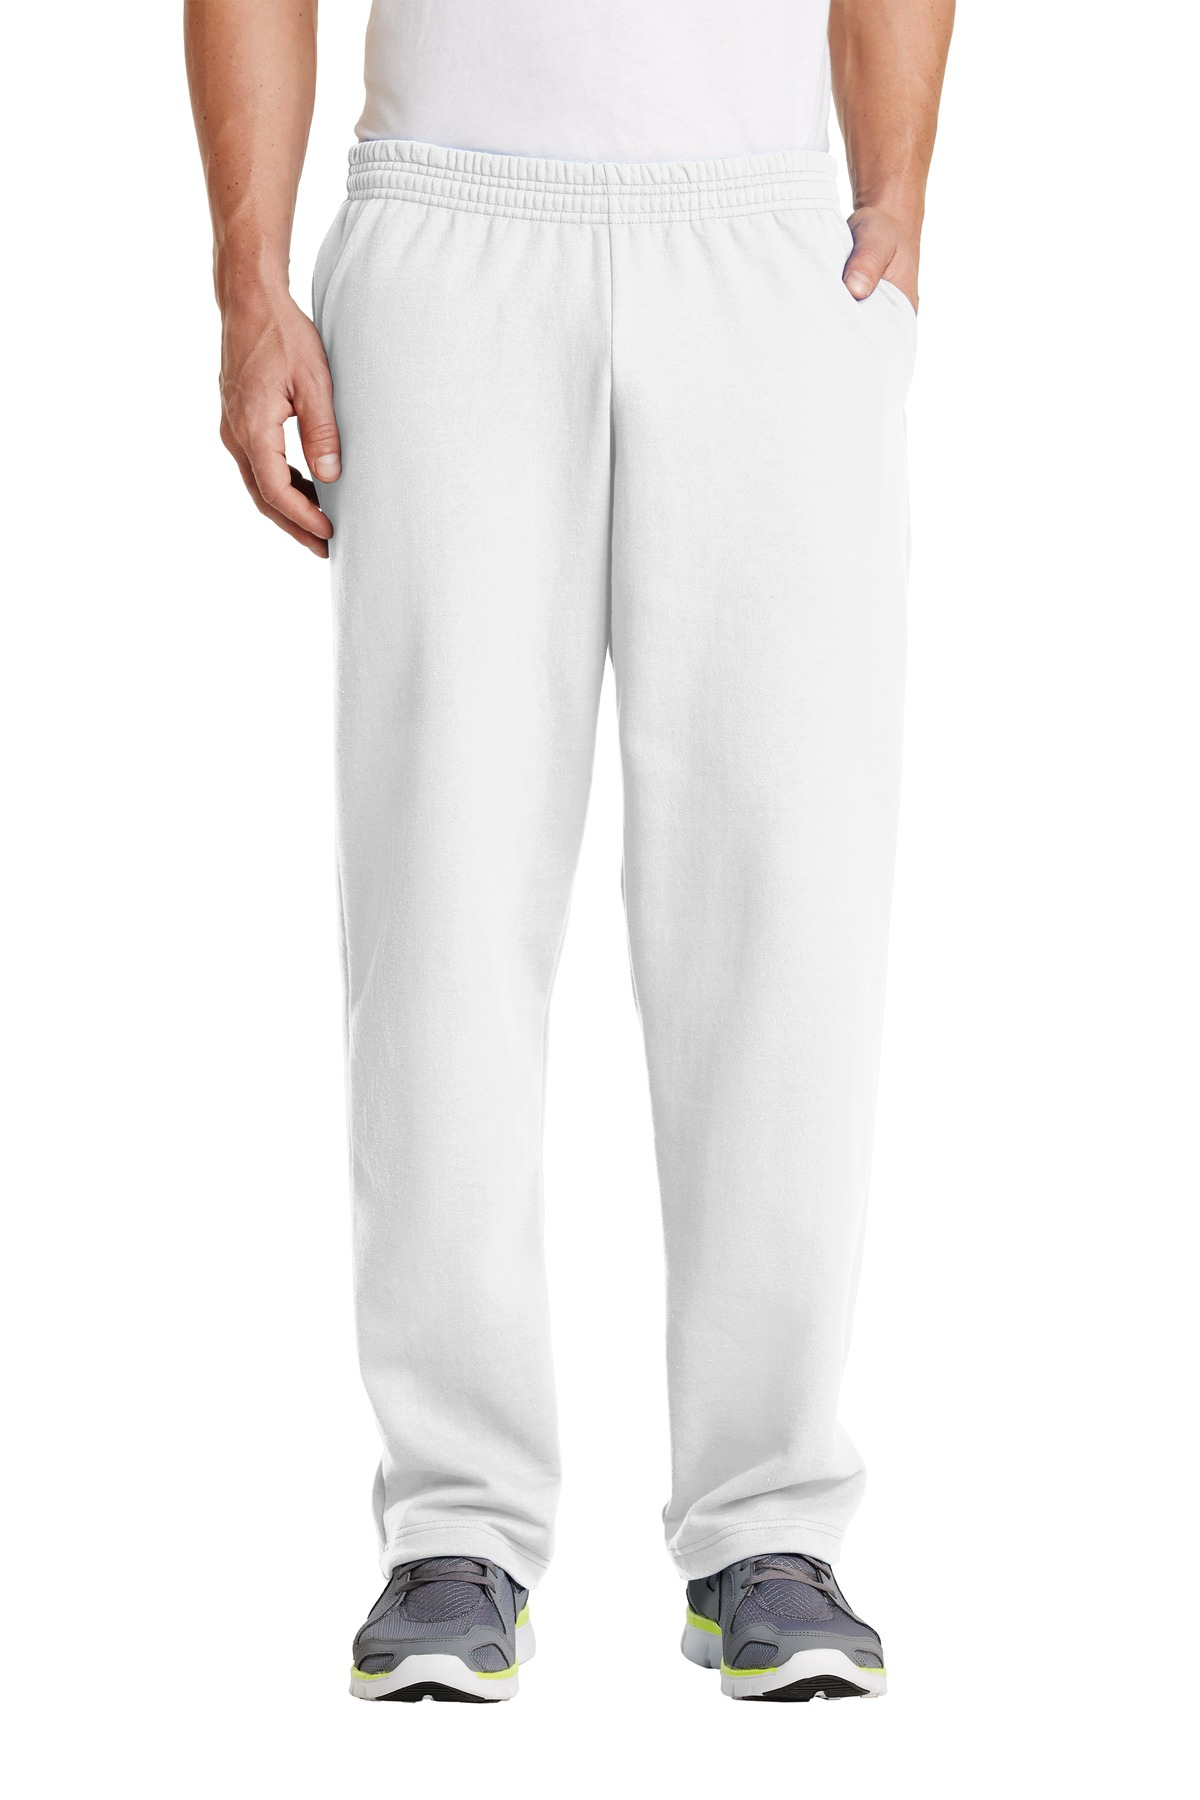 Port & Company ®  - Core Fleece Sweatpant with Pockets. PC78P - White